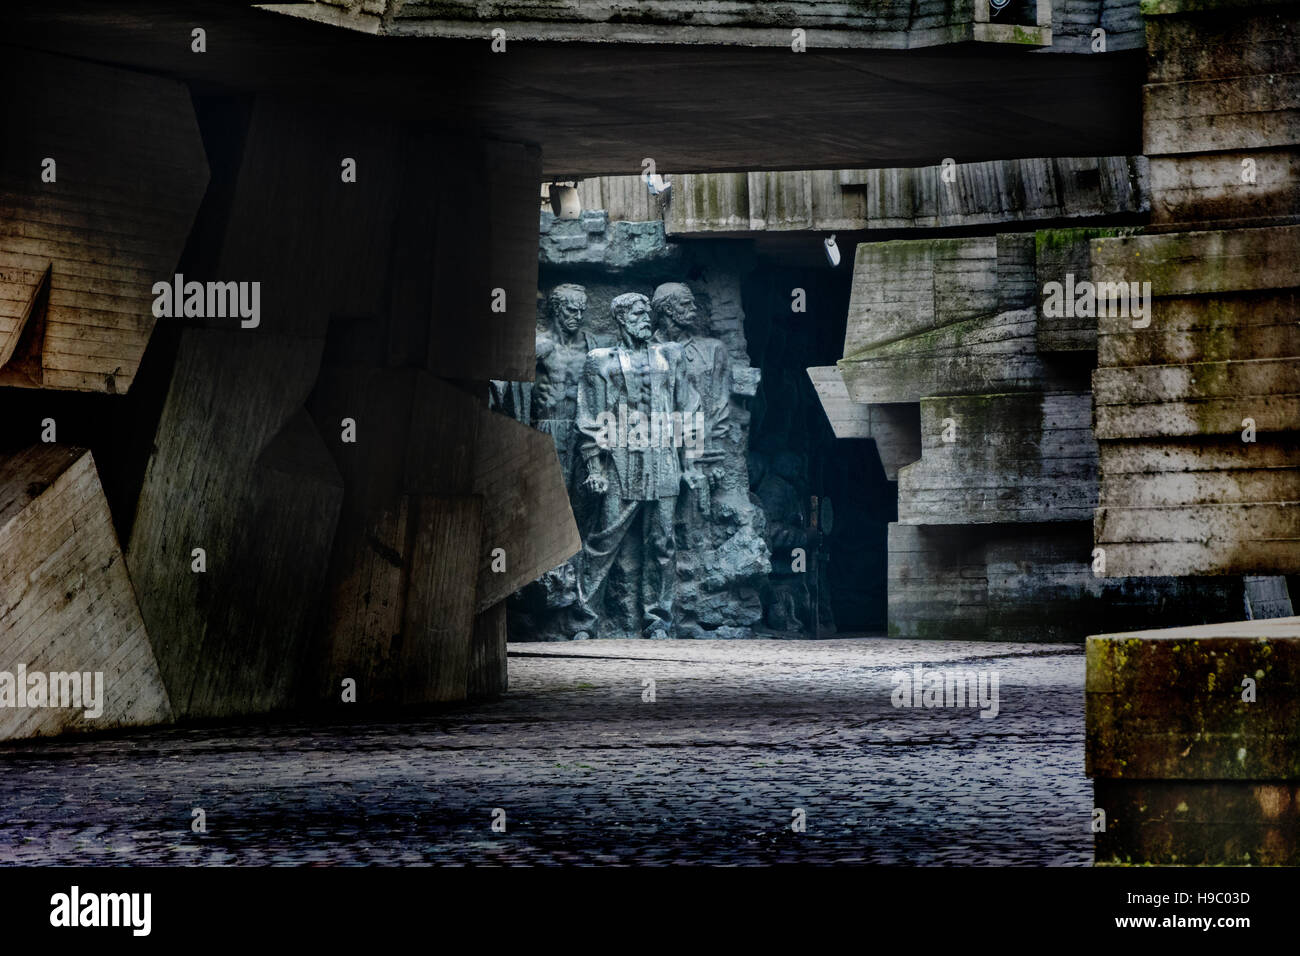 a fragment of the memorial dedicated to the heroism in World War II. Kiev, Ukraine. - Stock Image